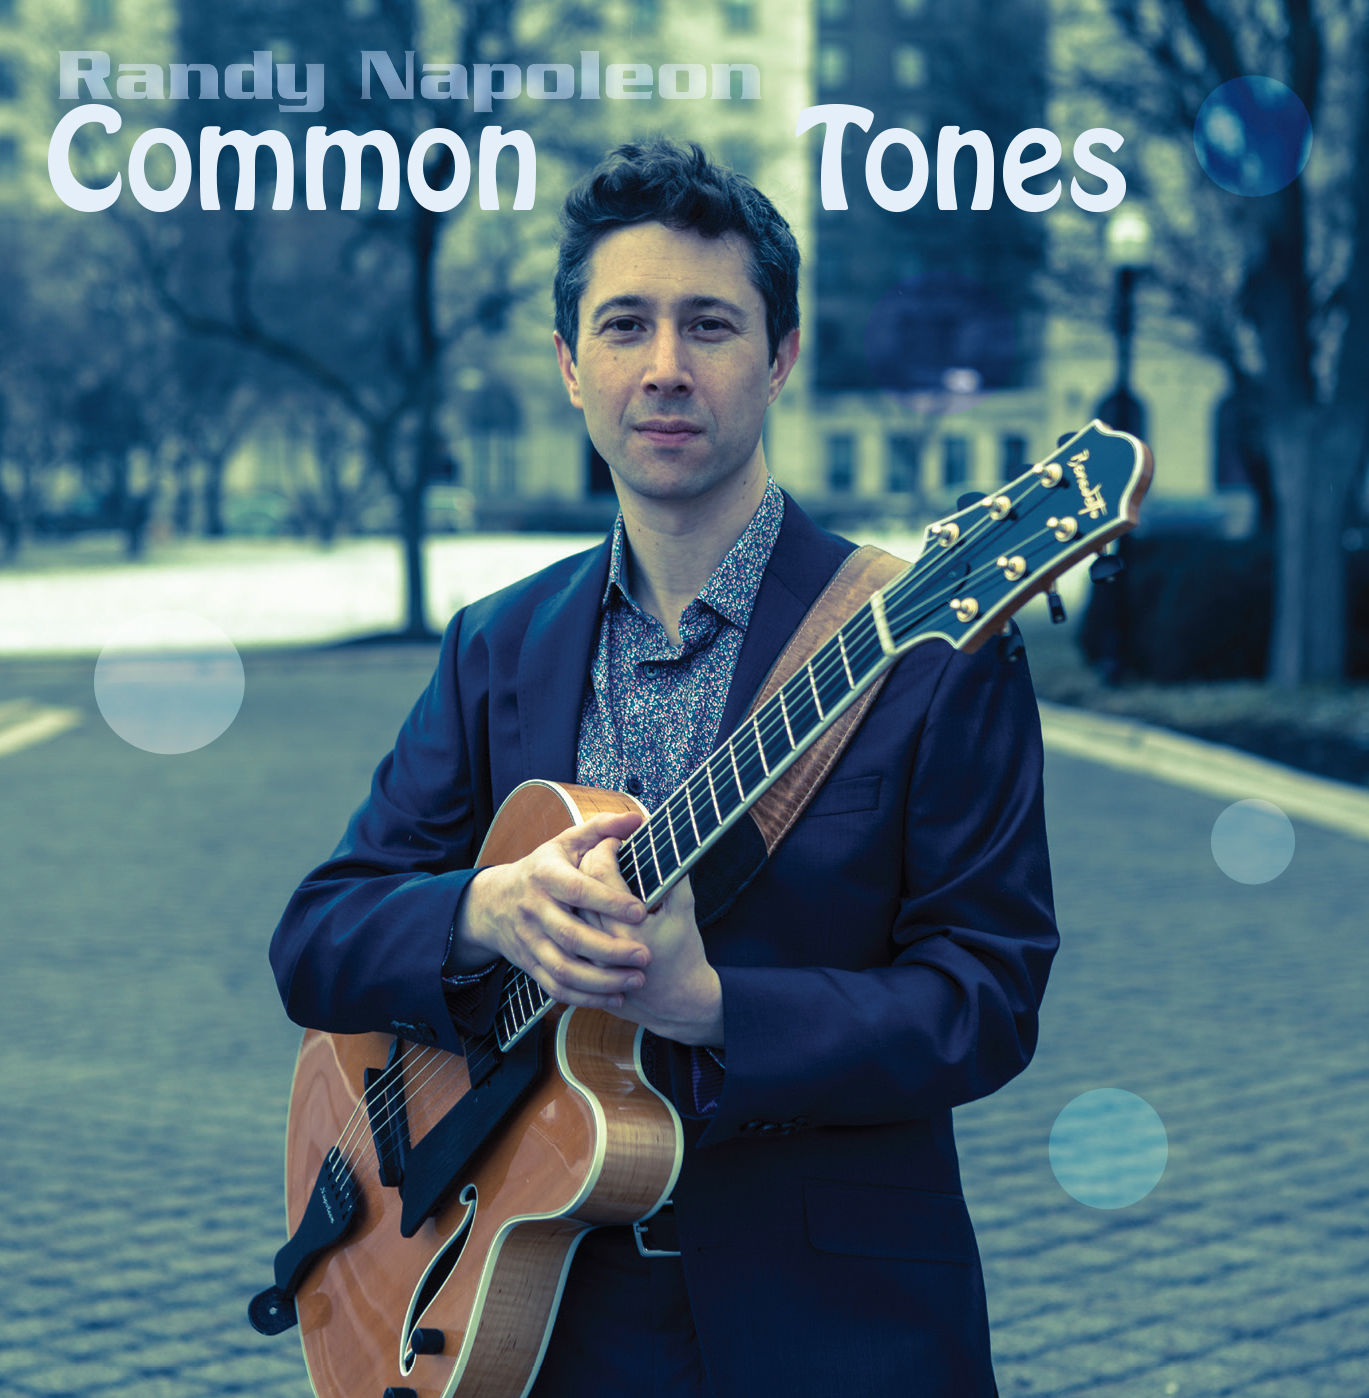 Randy Napoleon-Common Tones